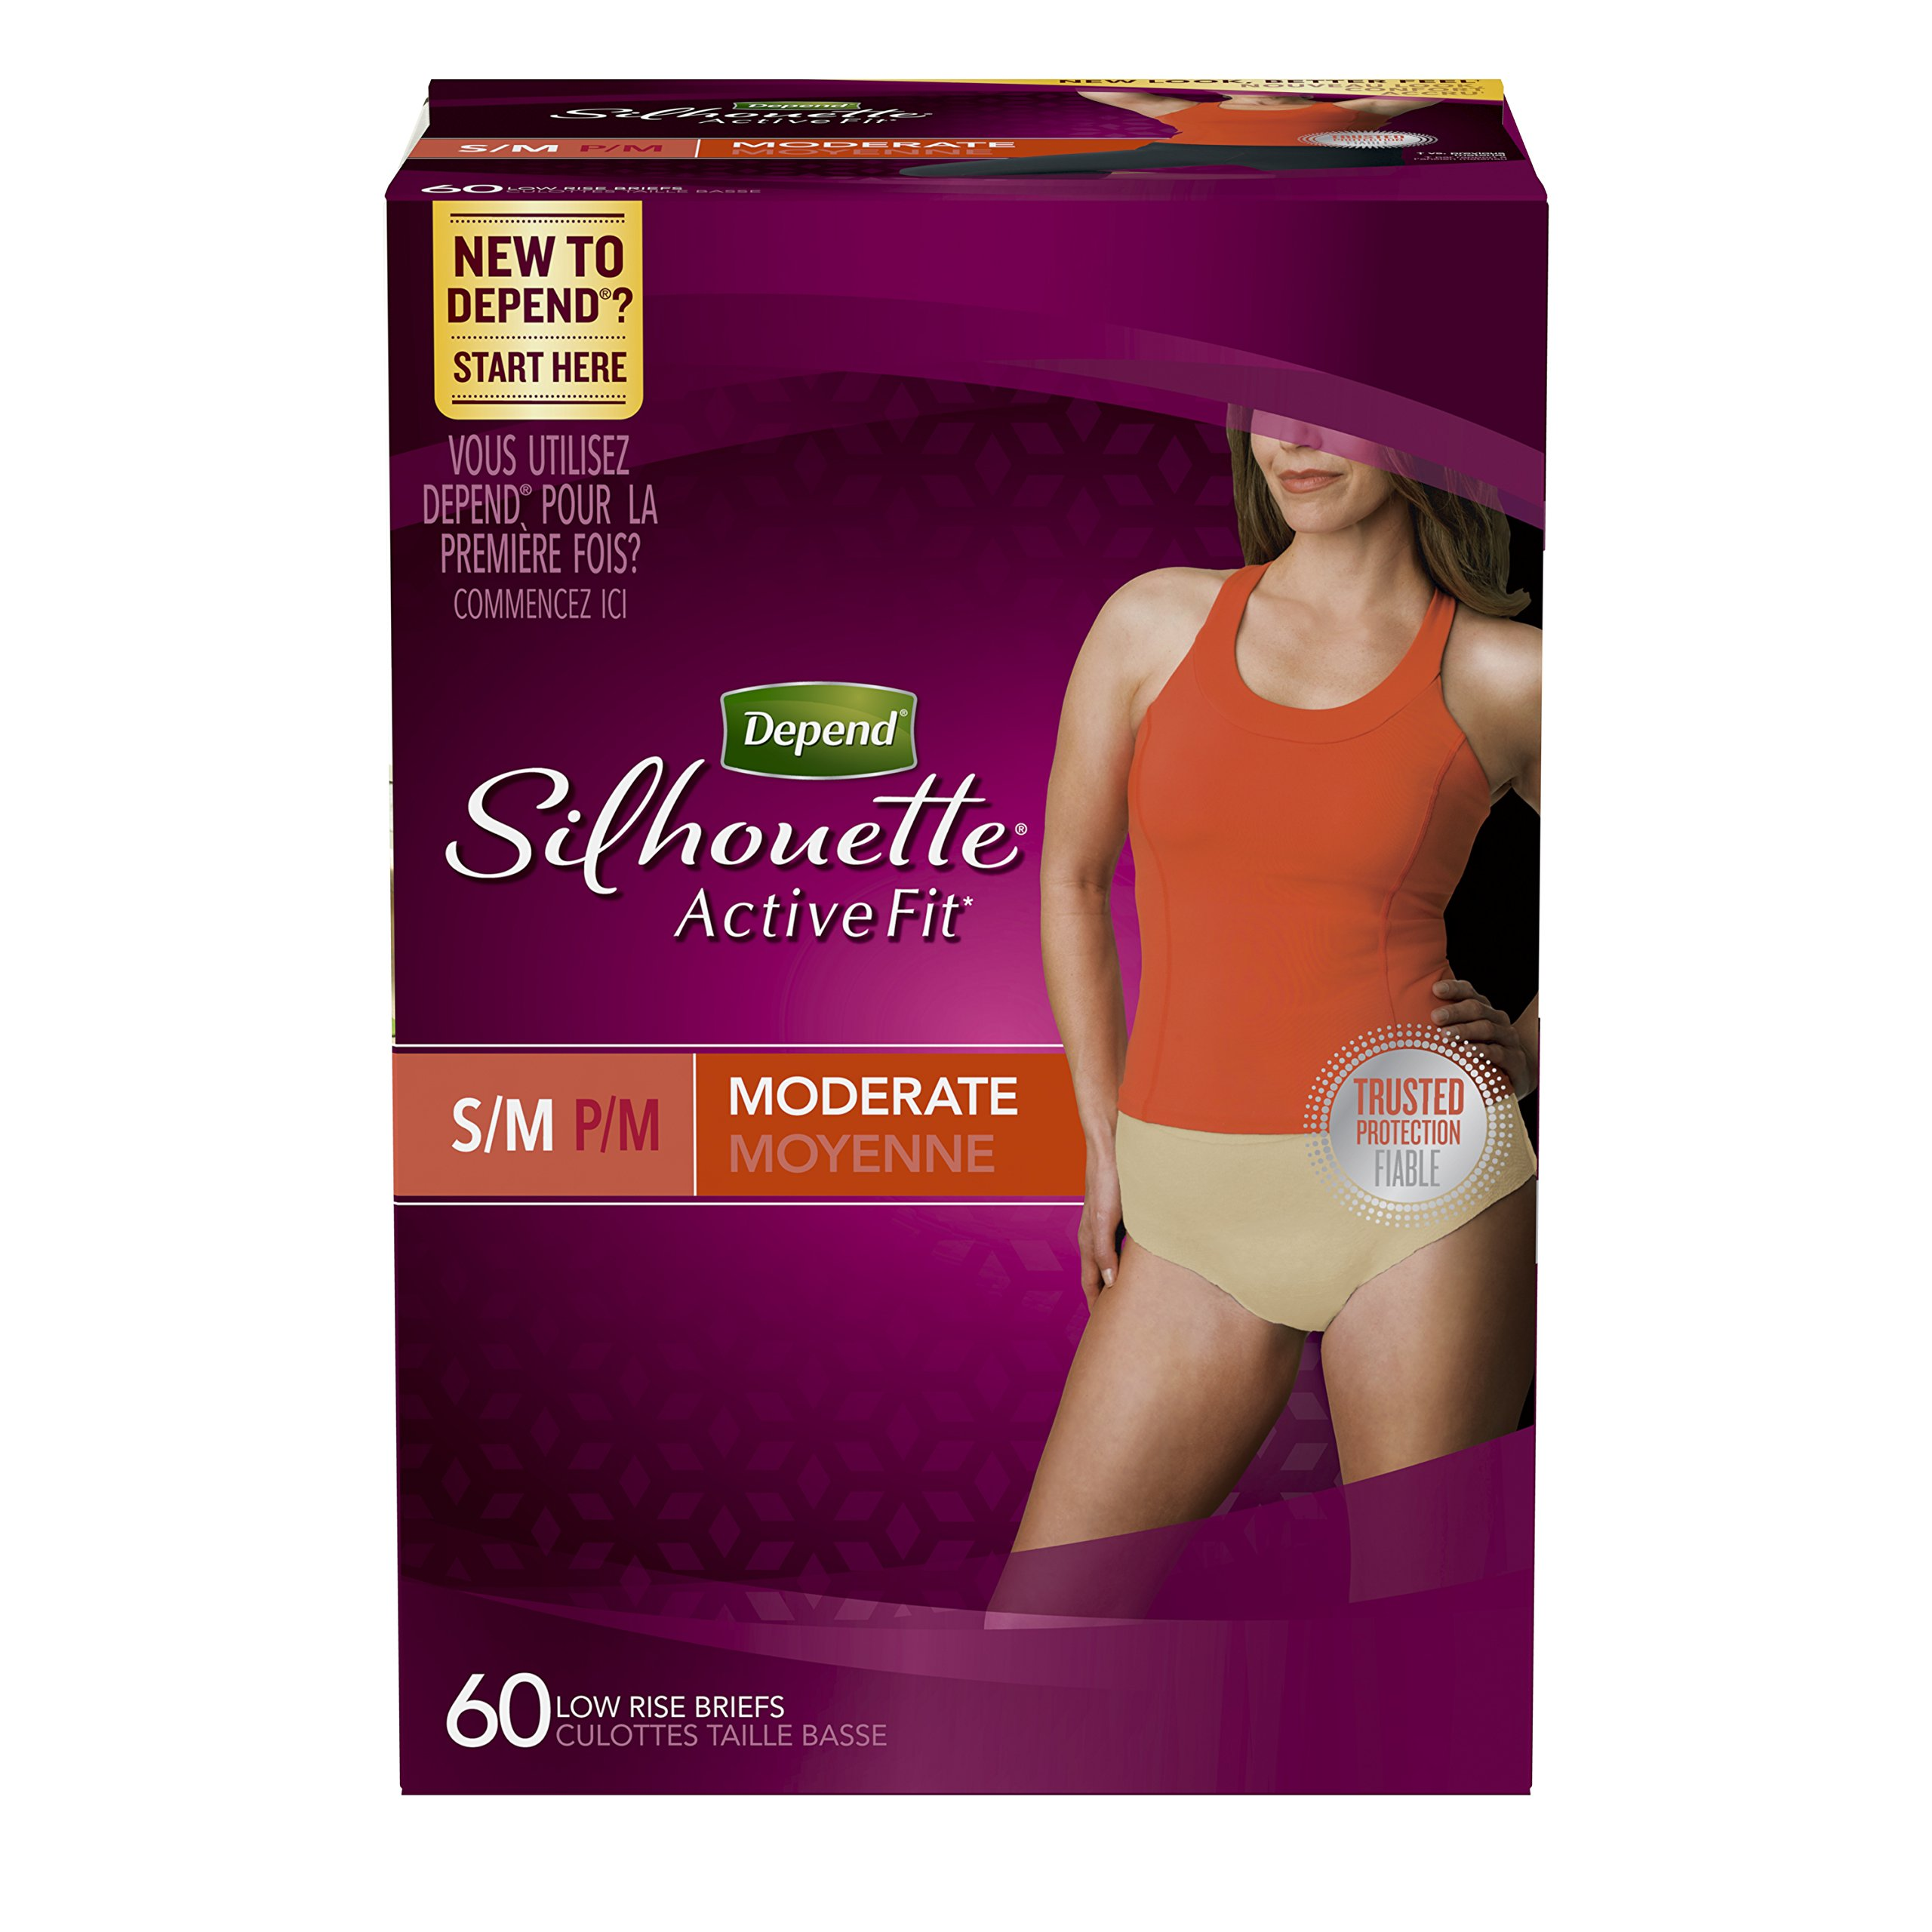 Depend Silhouette Active Fit Incontinence Underwear for Women, Moderate Absorbency, S/M, Beige, 60 Count